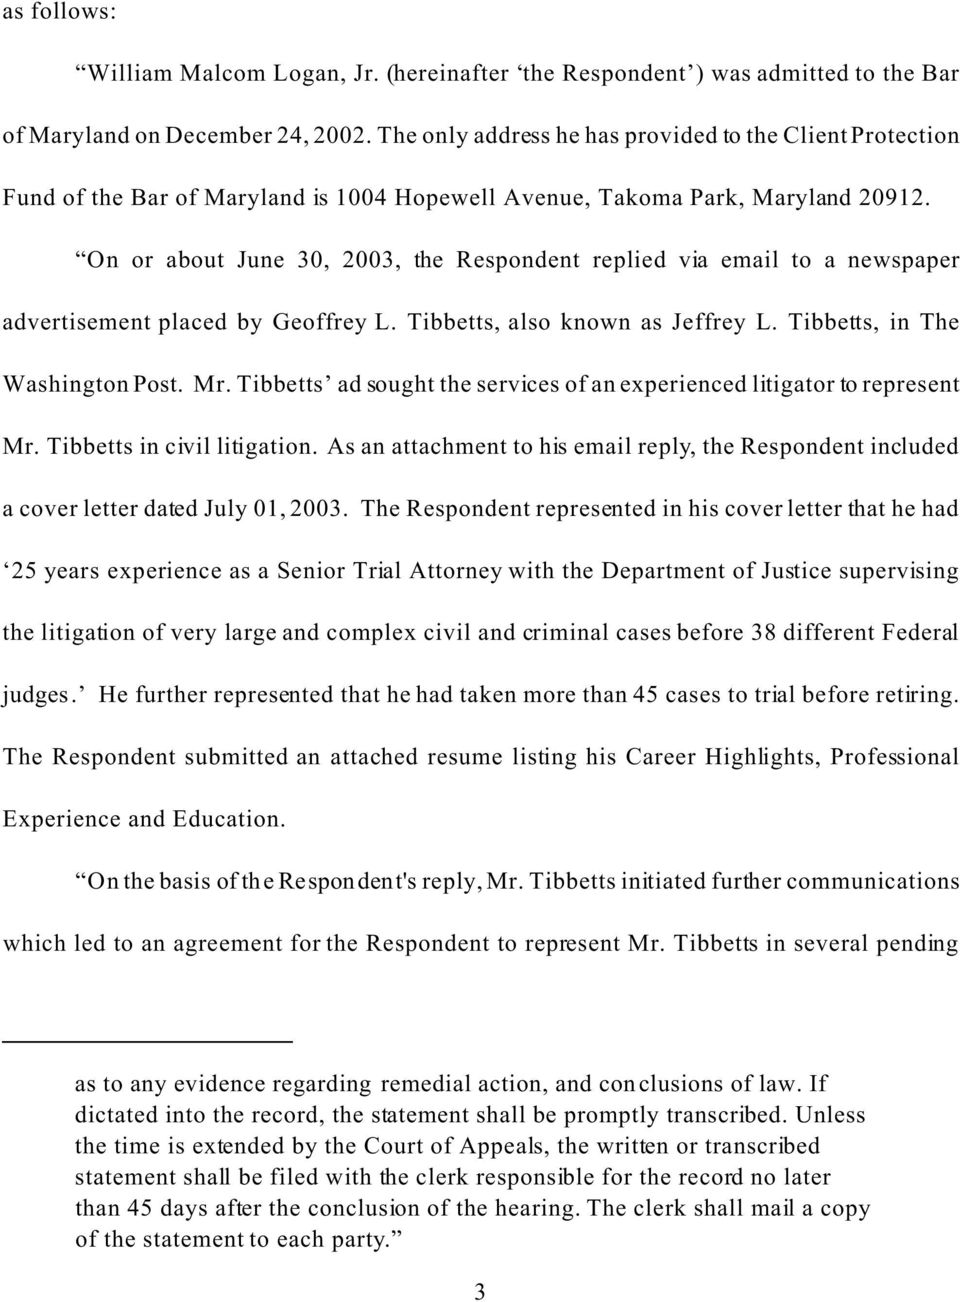 On or about June 30, 2003, the Respondent replied via email to a newspaper advertisement placed by Geoffrey L. Tibbetts, also known as Jeffrey L. Tibbetts, in The Washington Post. Mr.